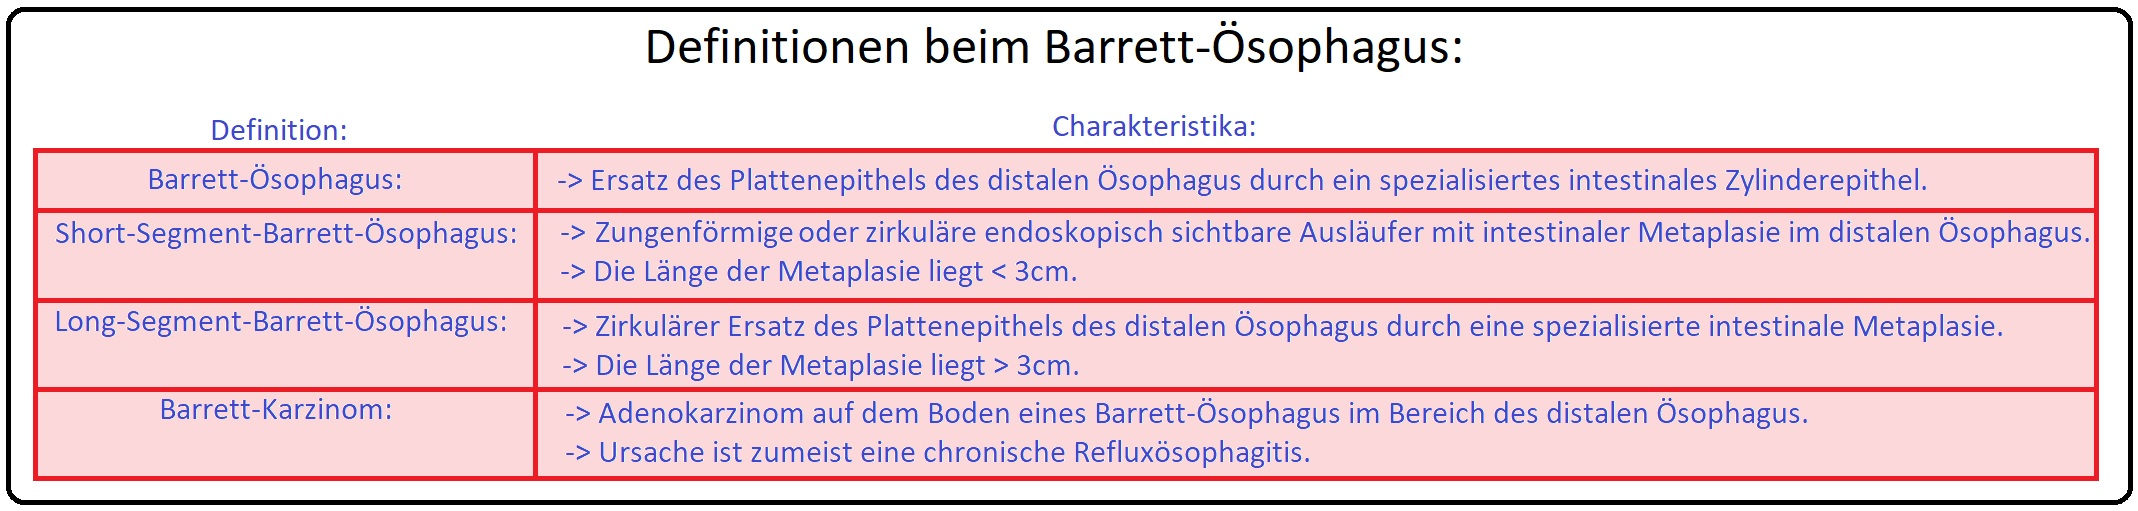 997 Definitionen beim Barrett Ösophagus